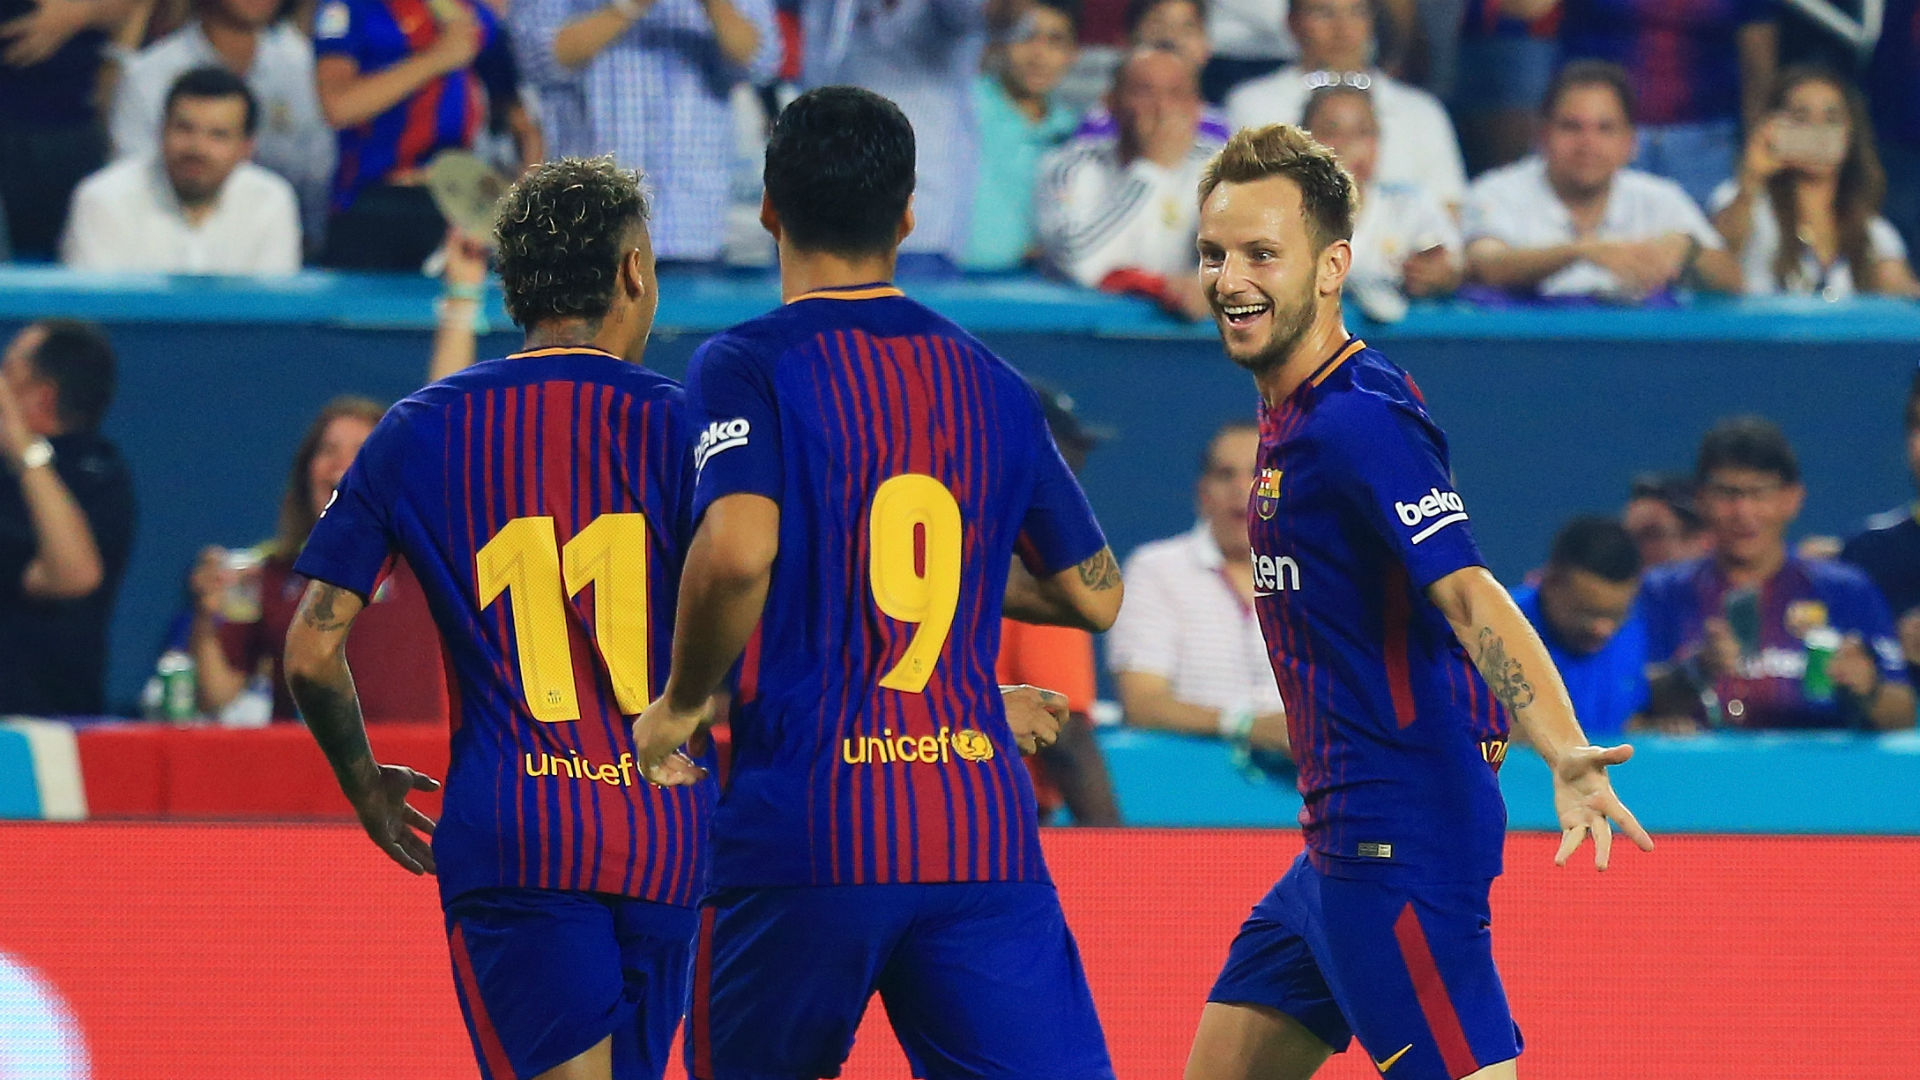 Lionel Messi's Individual Highlights Against Eibar Are A Joy To Watch